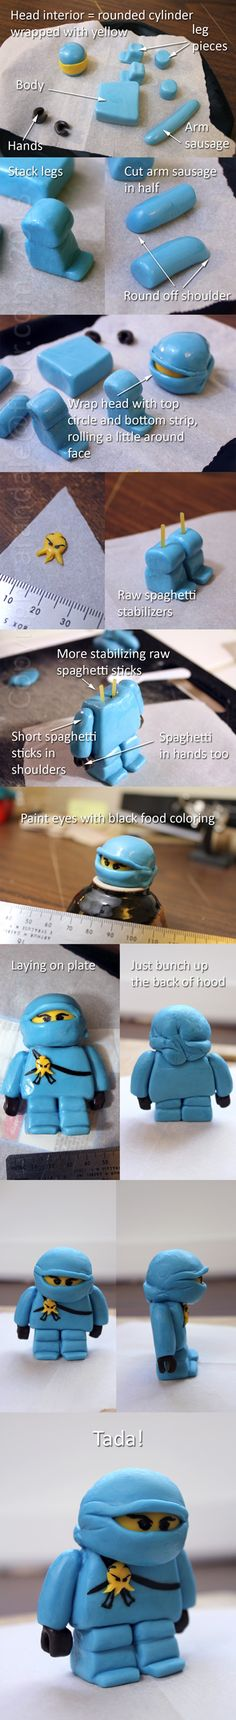 "How to make a marshmallow fondant ""ninjago"" cake topper"